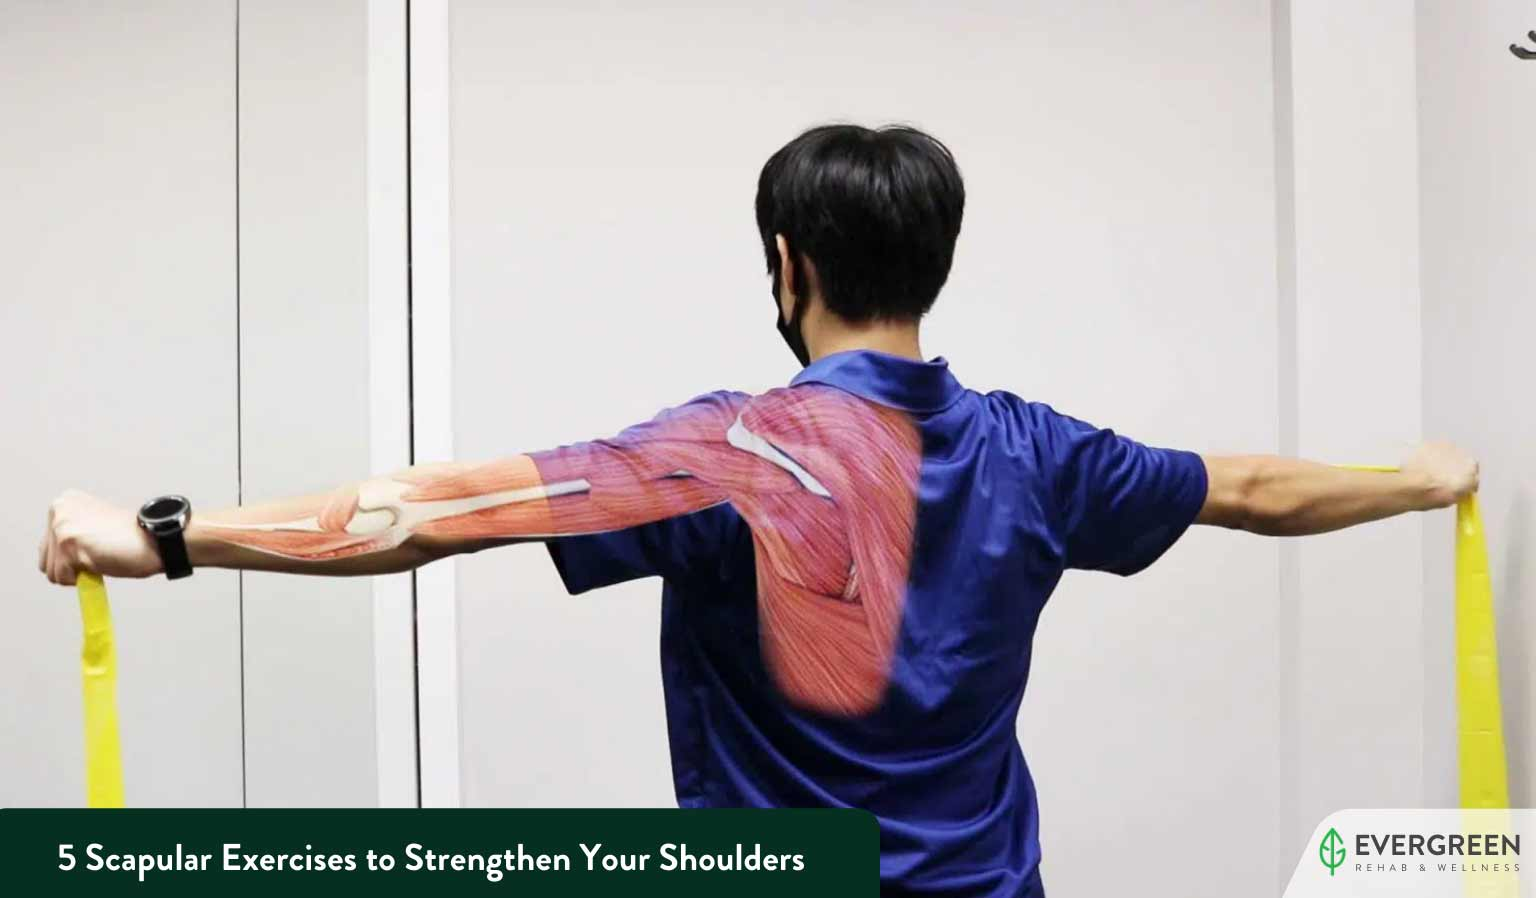 5 Scapular Exercises to Strengthen Your Shoulders